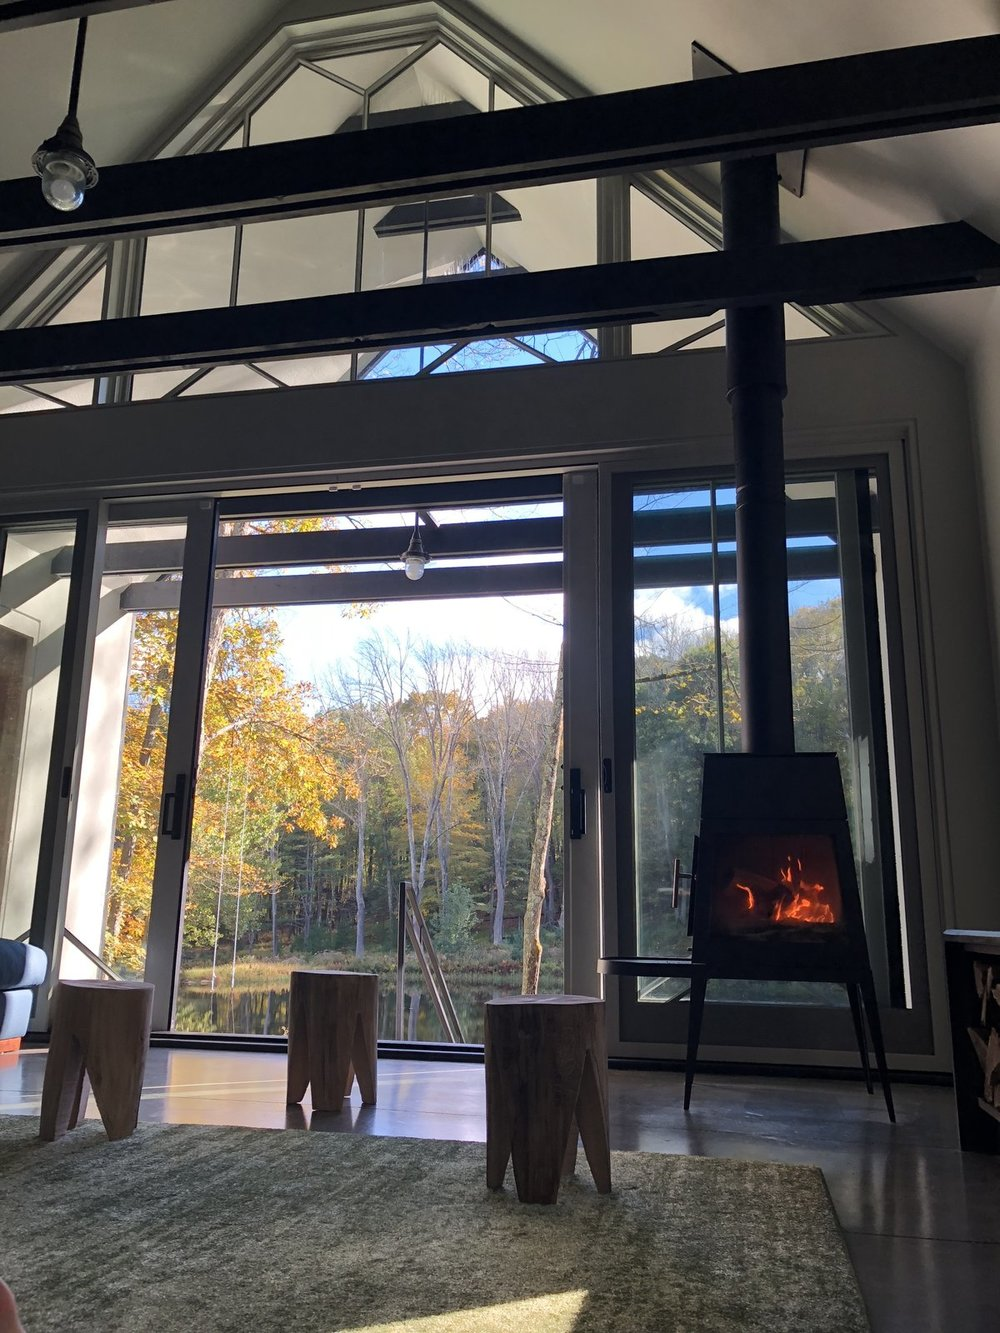 A glass wall opens up the indoor living area to the great outdoors. (Kyle Page)